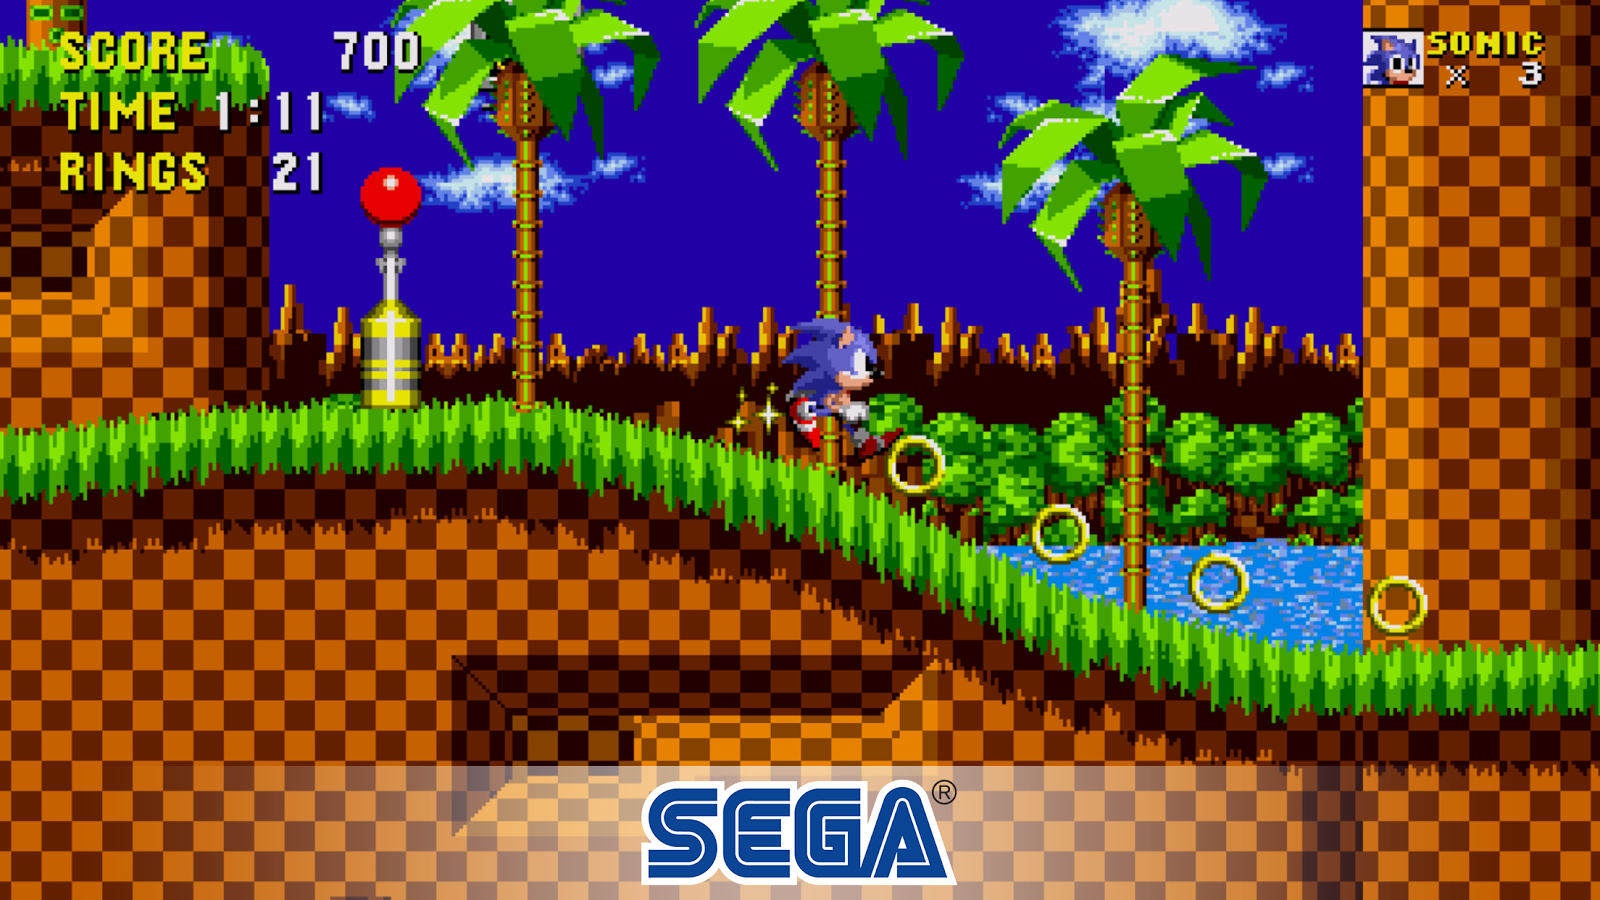 Sonic 1 SEGA Forever mobile game screenshot